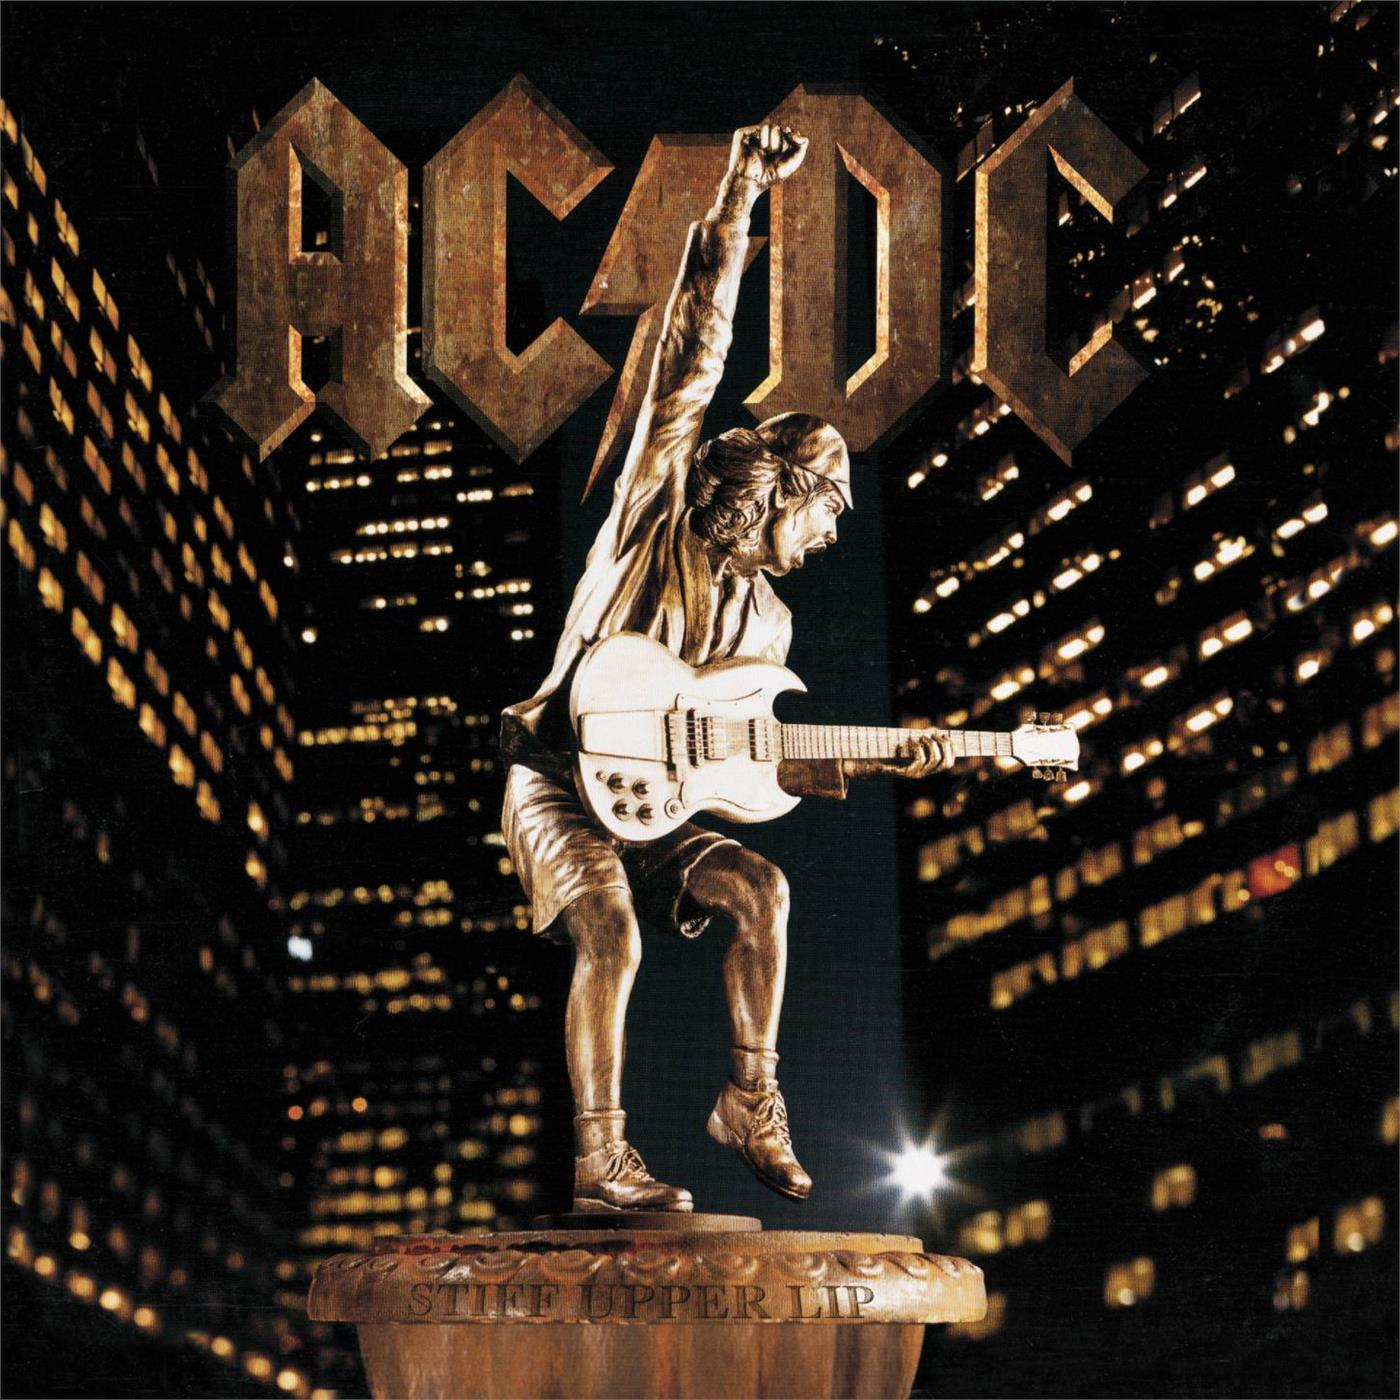 888430492813 Columbia  AC/DC Stiff Upper Lip (LP)